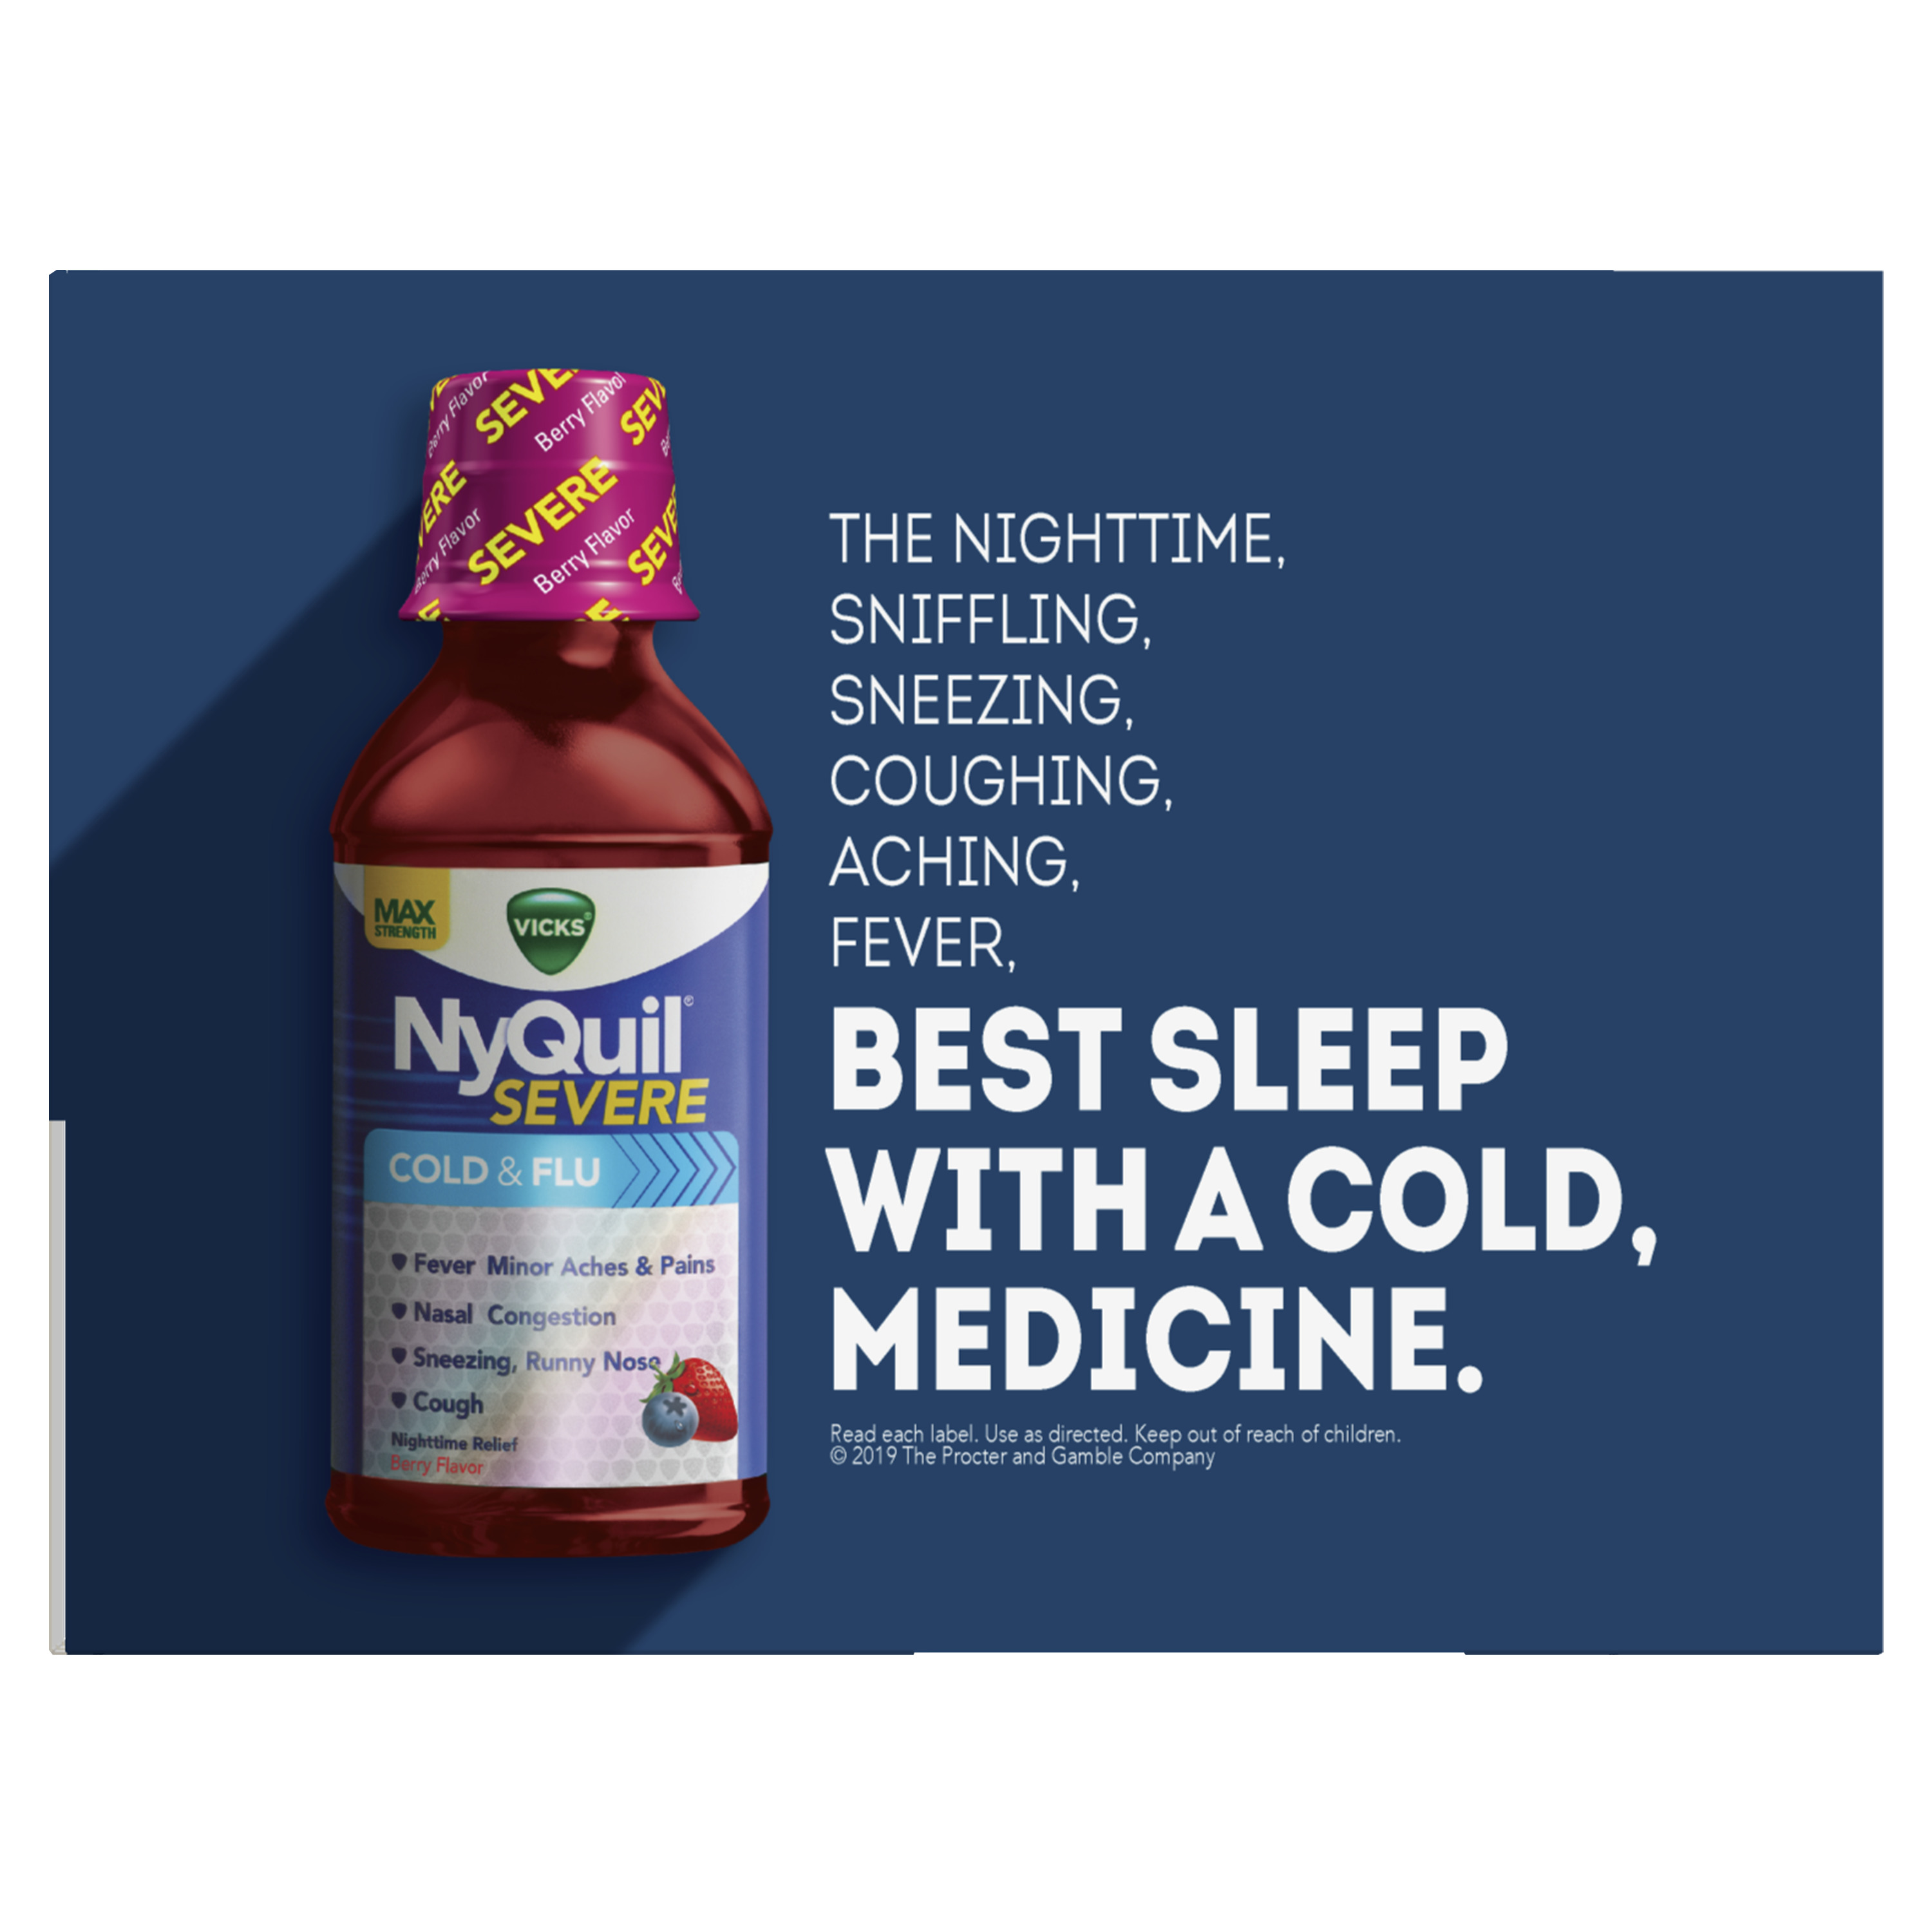 NyQuil™ Cold & Flu - Vicks